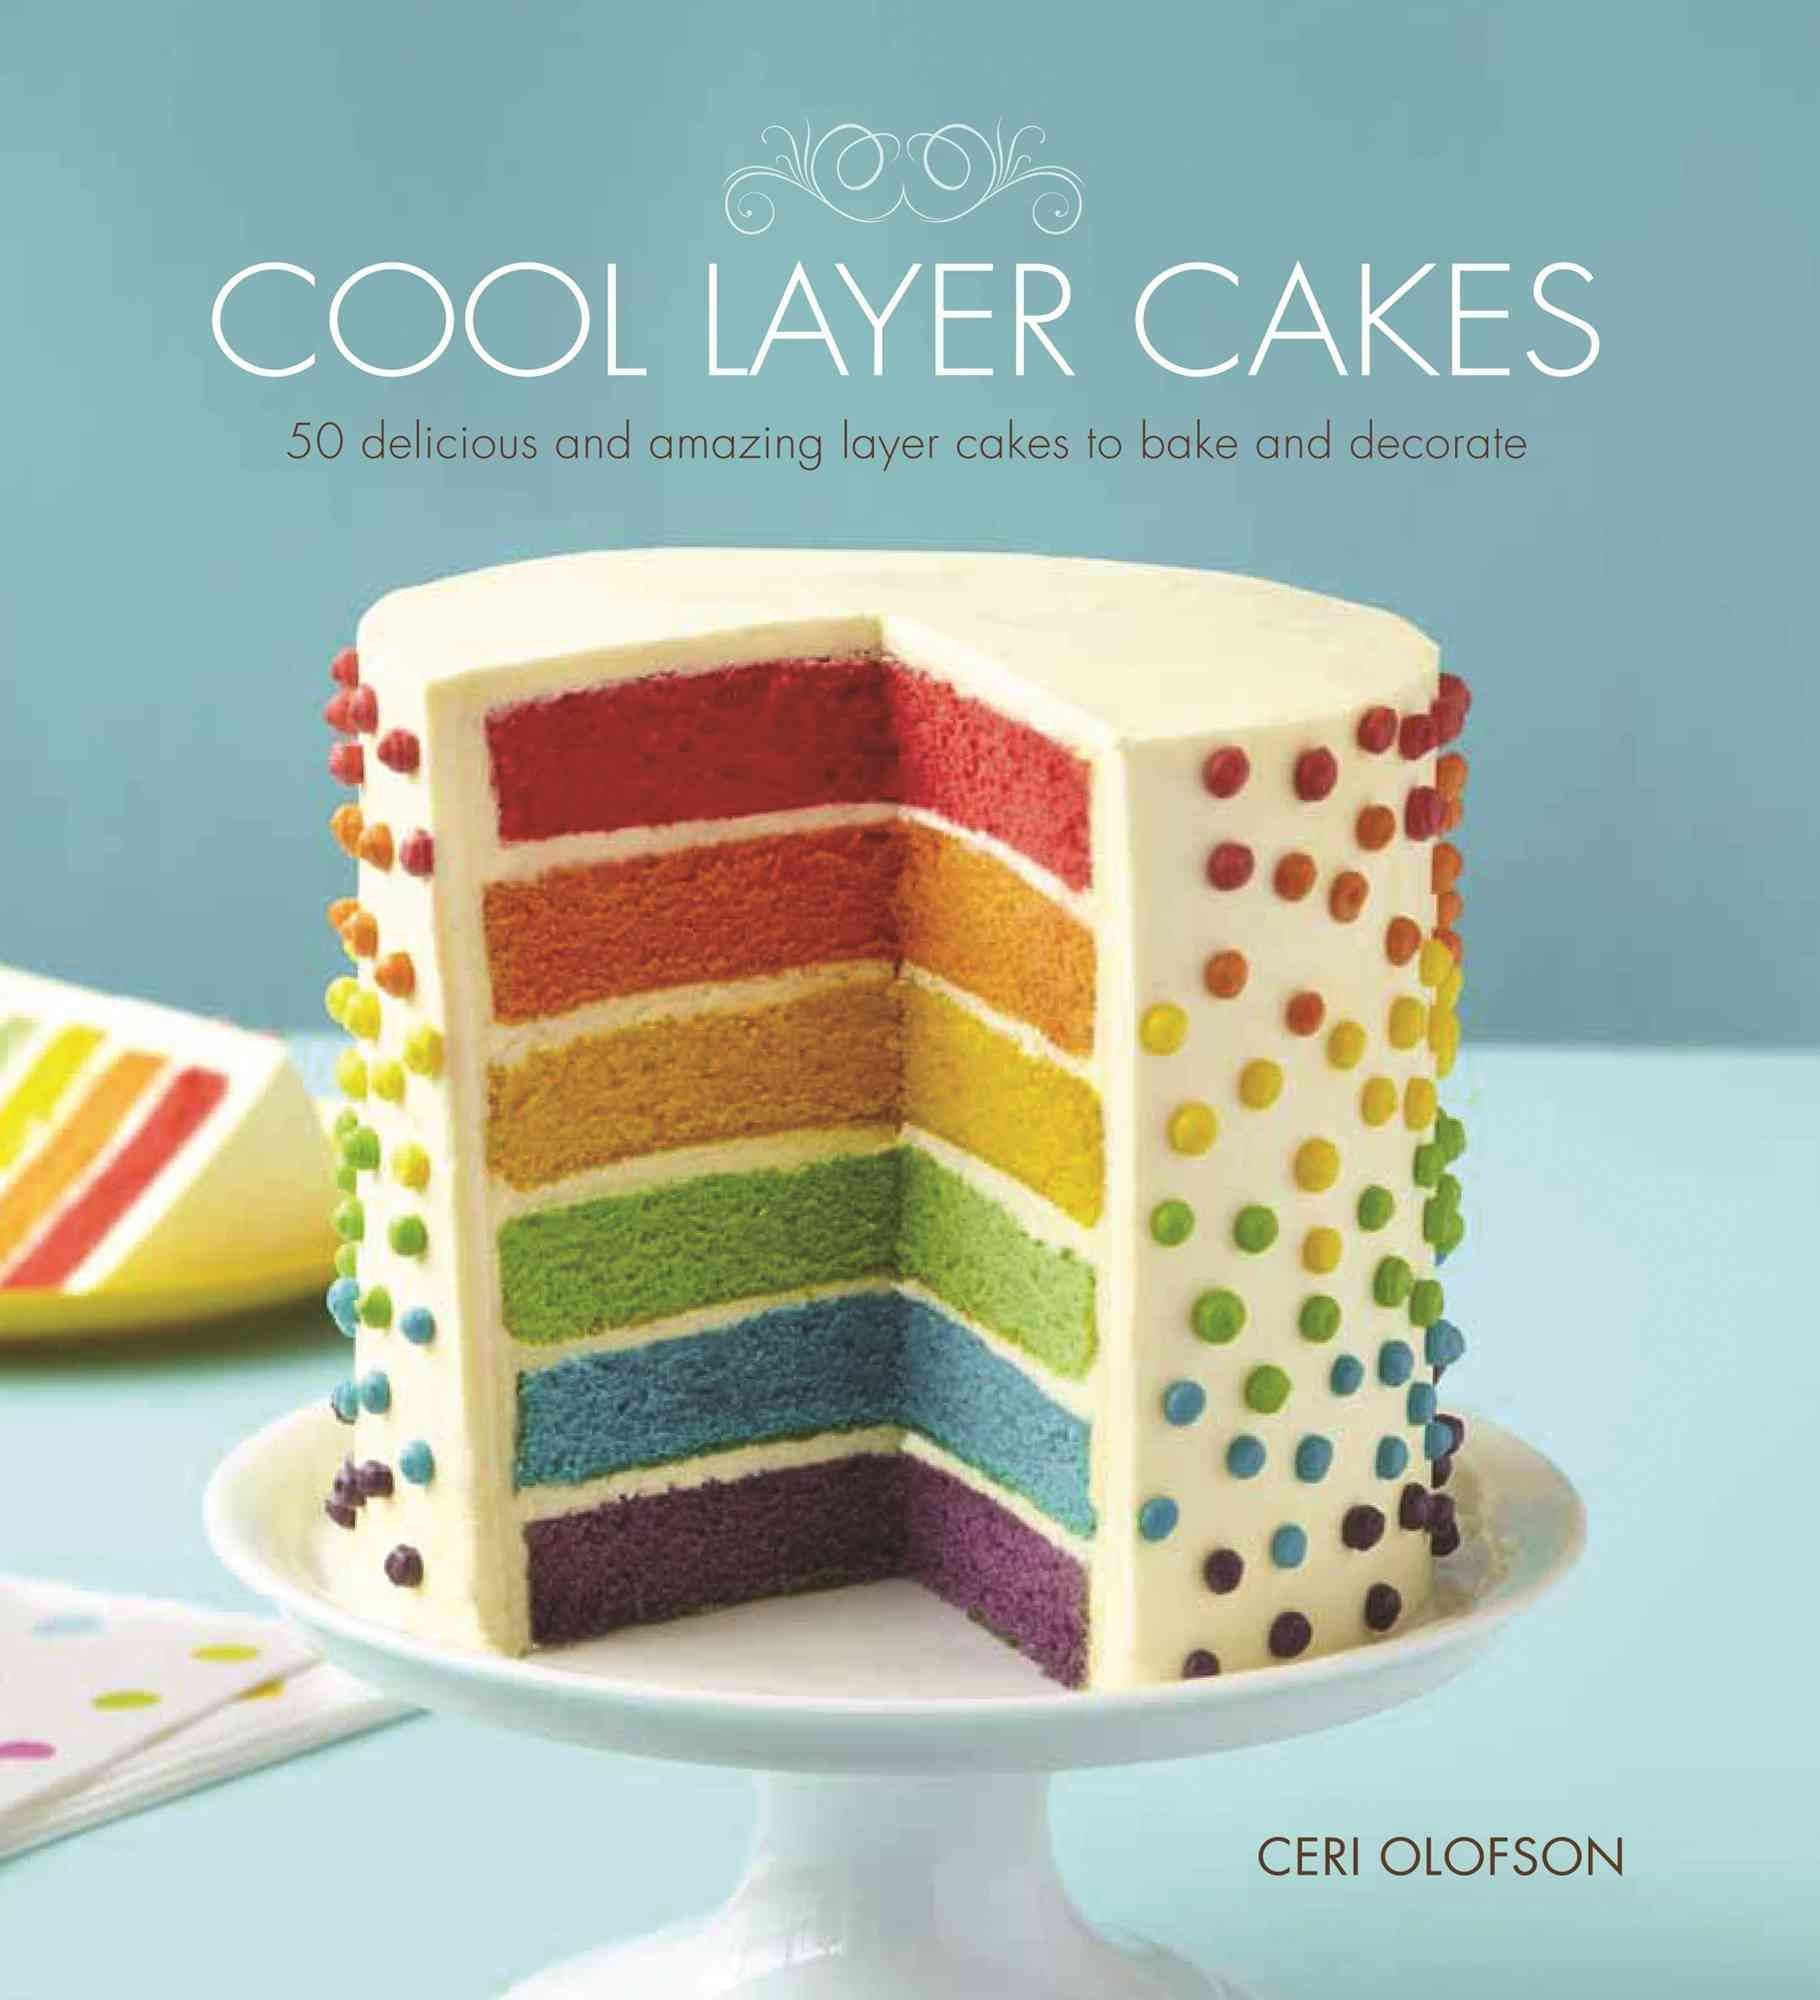 Cool layer cakes 50 delicious and amazing layer cakes to for Decoration layer cake